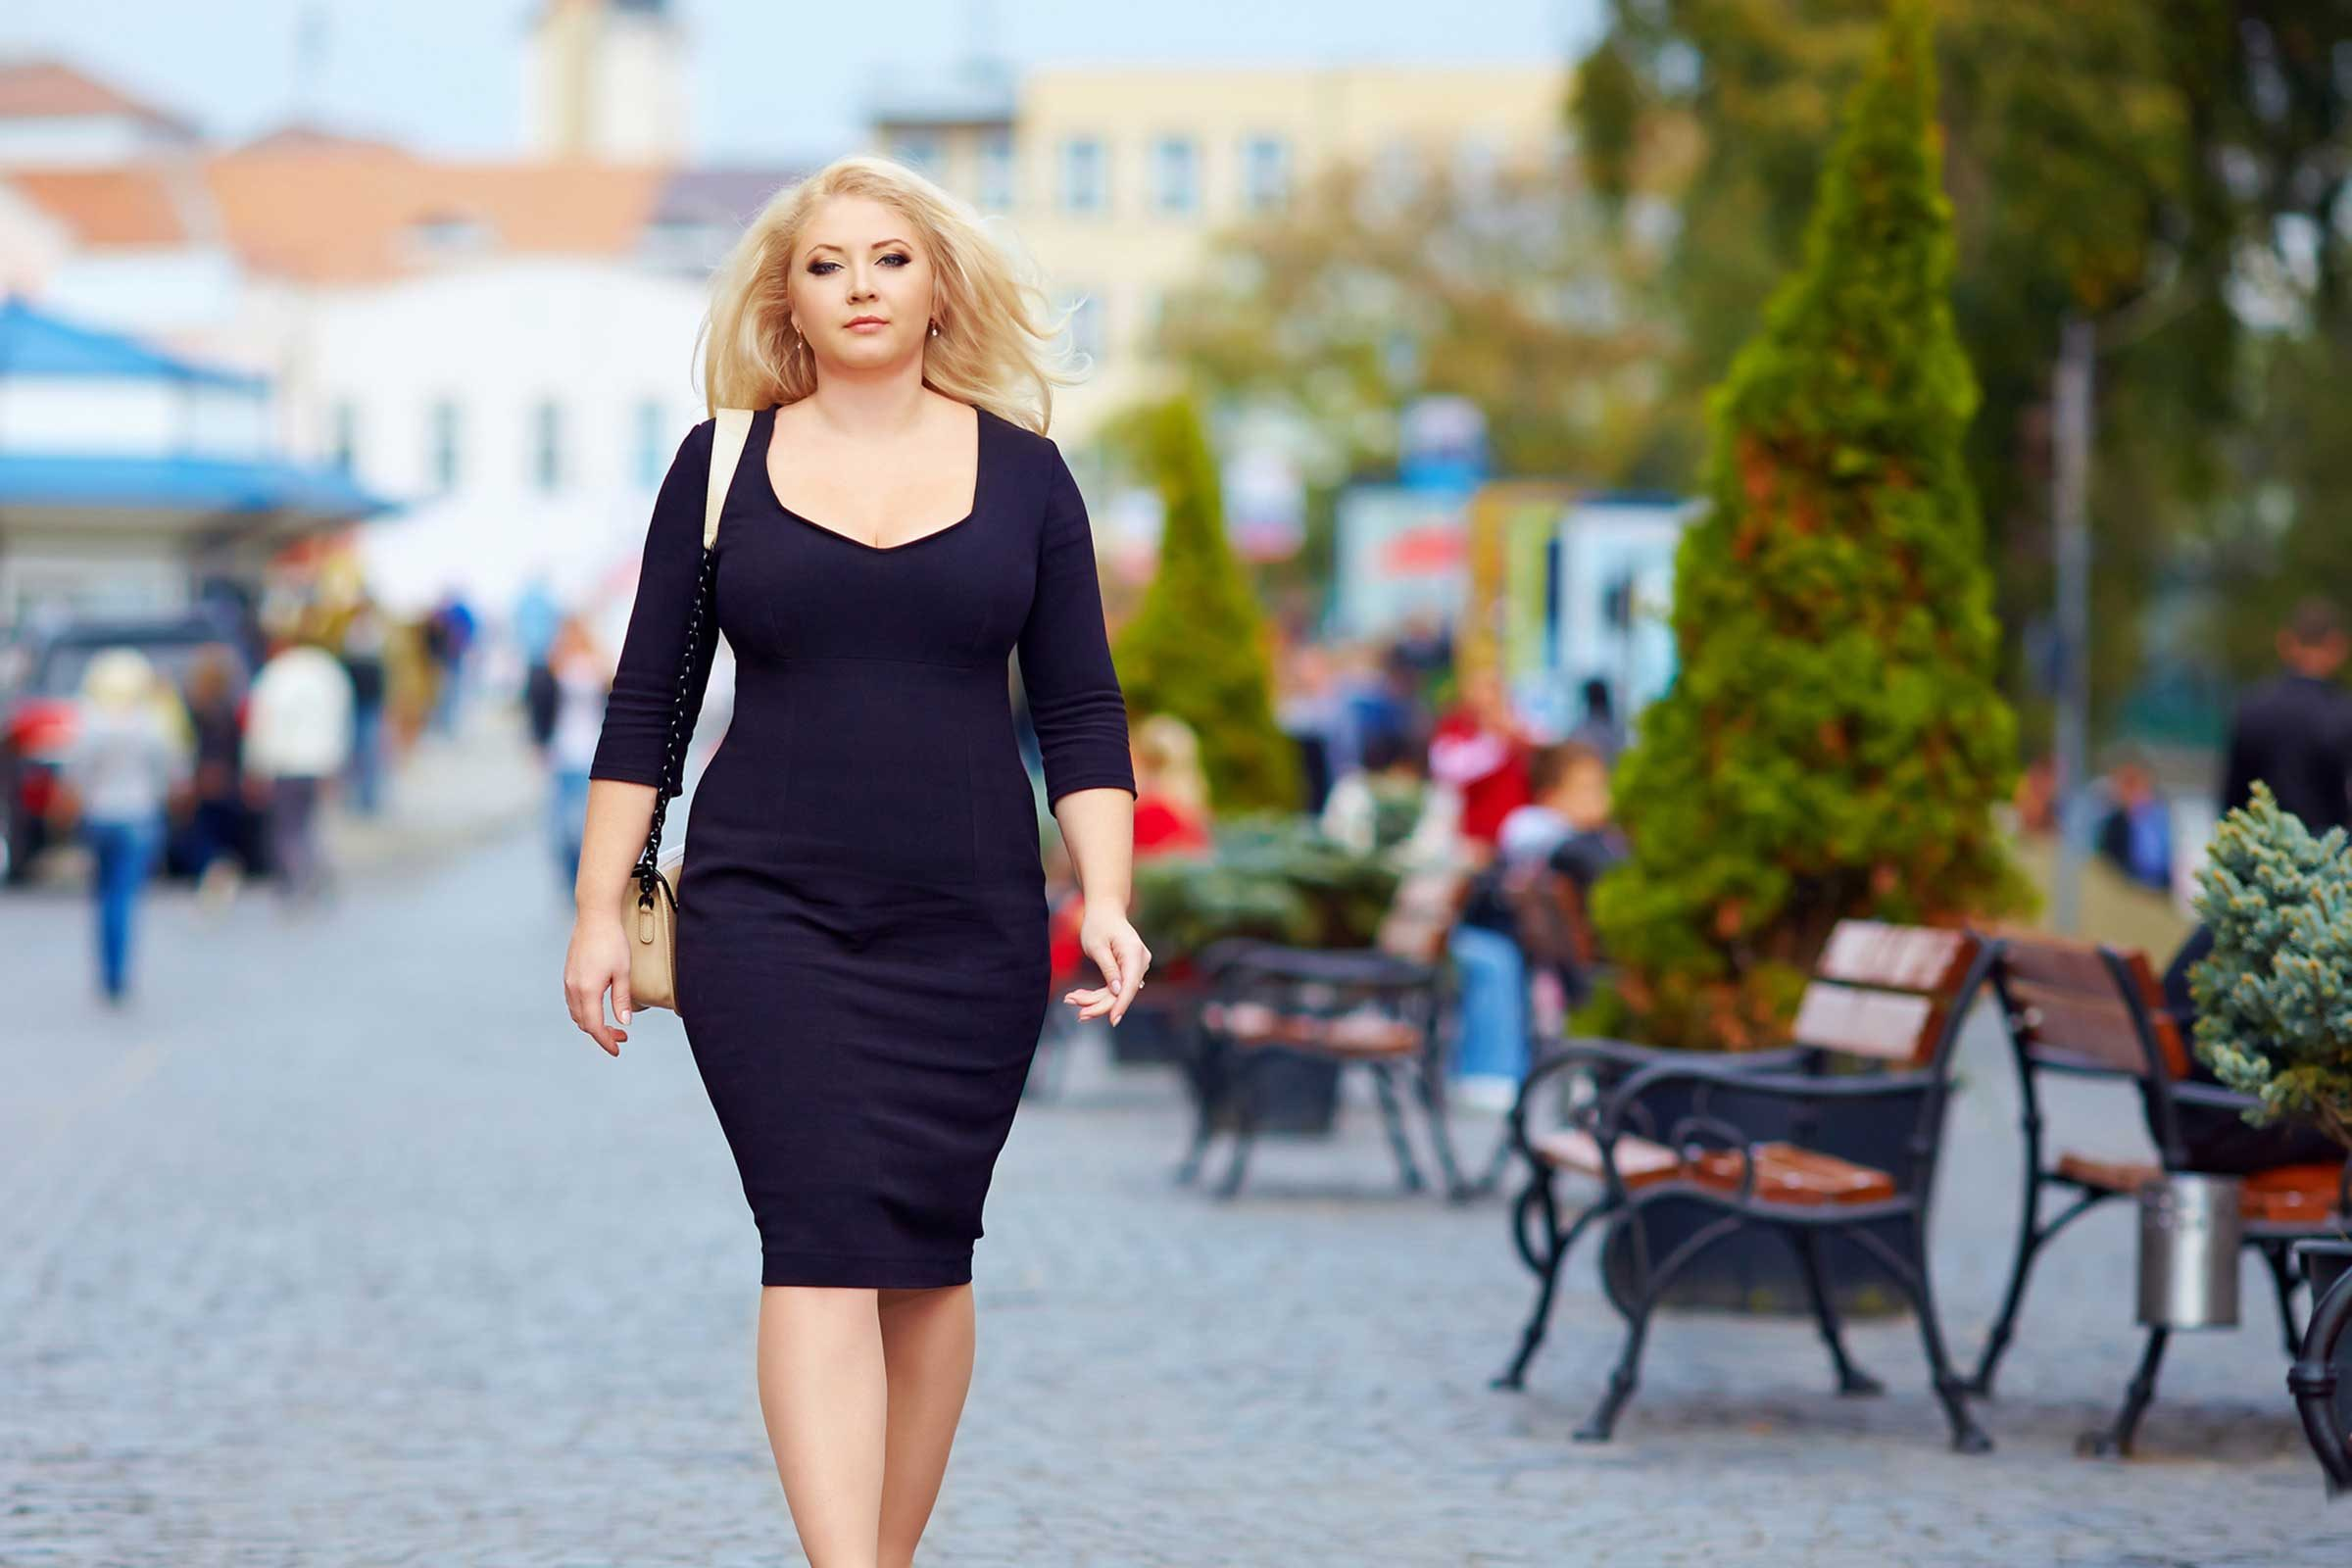 Why strong women feel confident at any size